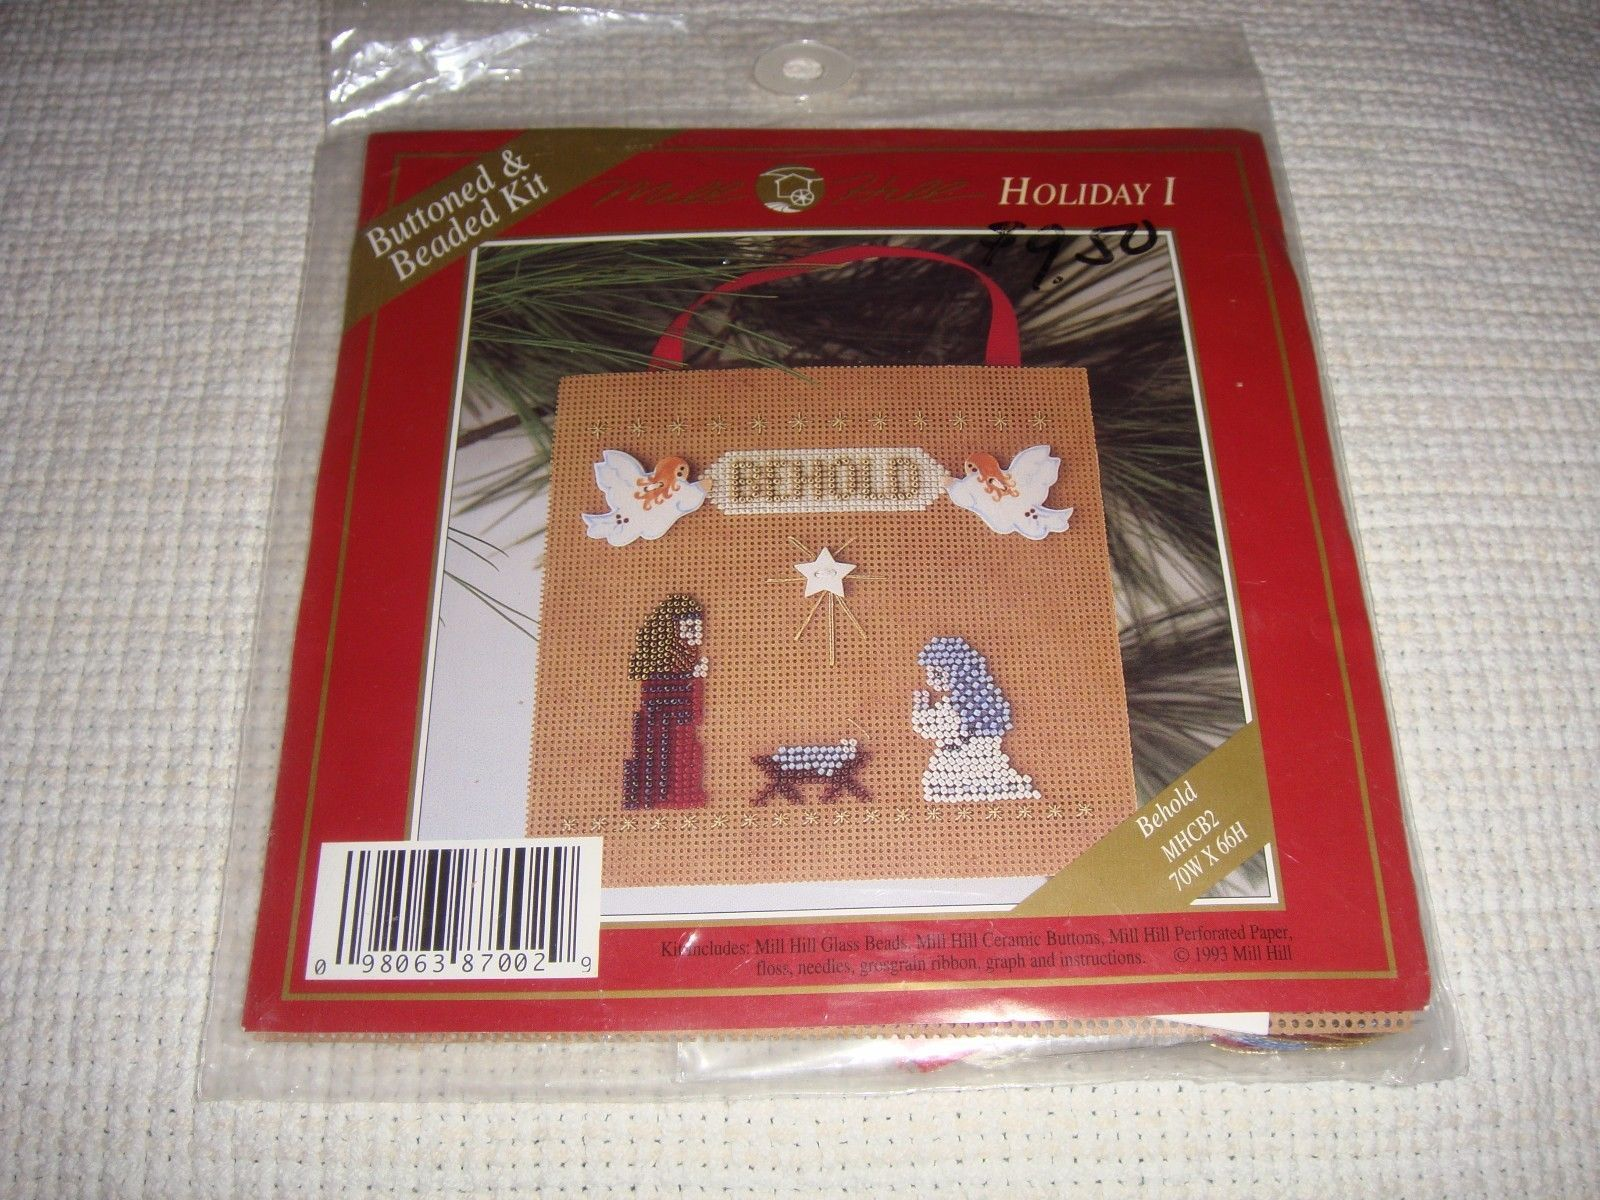 Primary image for Mill Hill Behold Holiday I Buttoned & Beaded Cross Stitch Kit